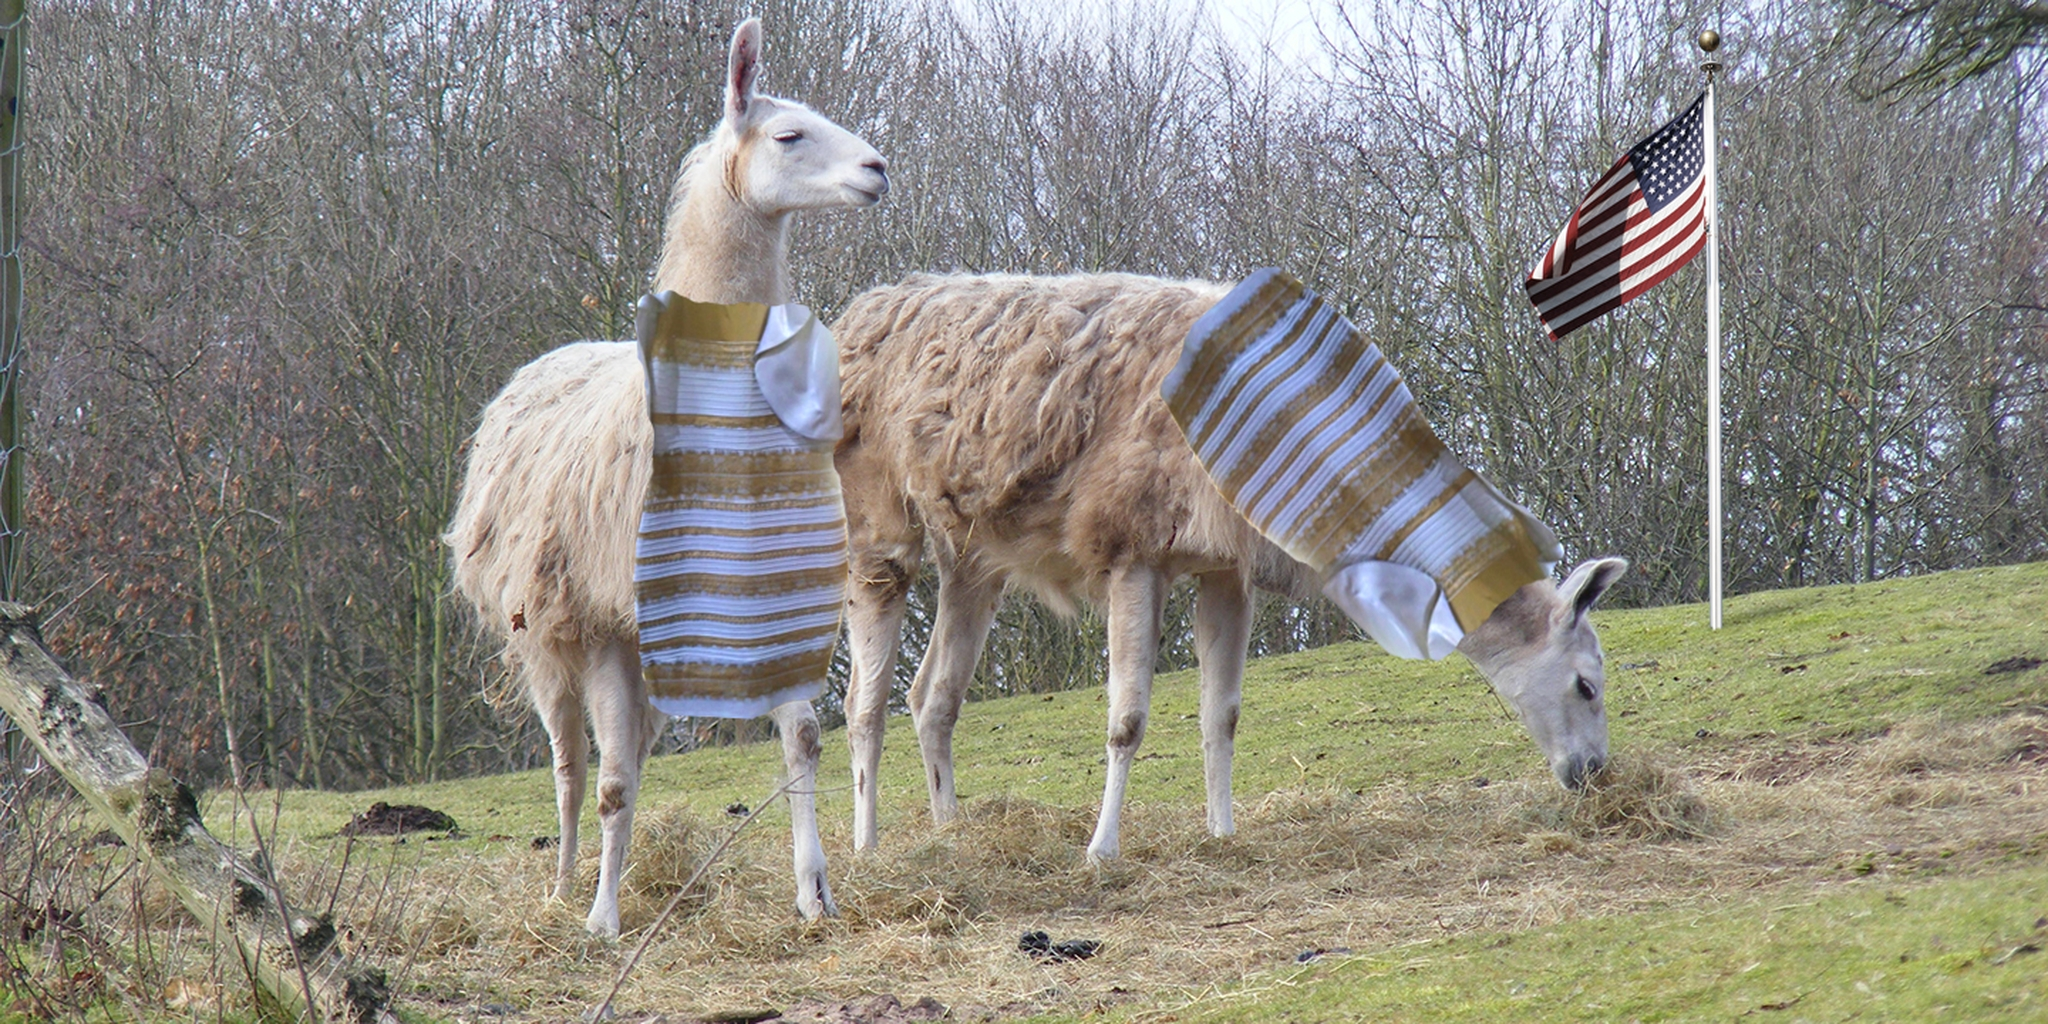 Llamas wearing ugly dresses in front of US flag